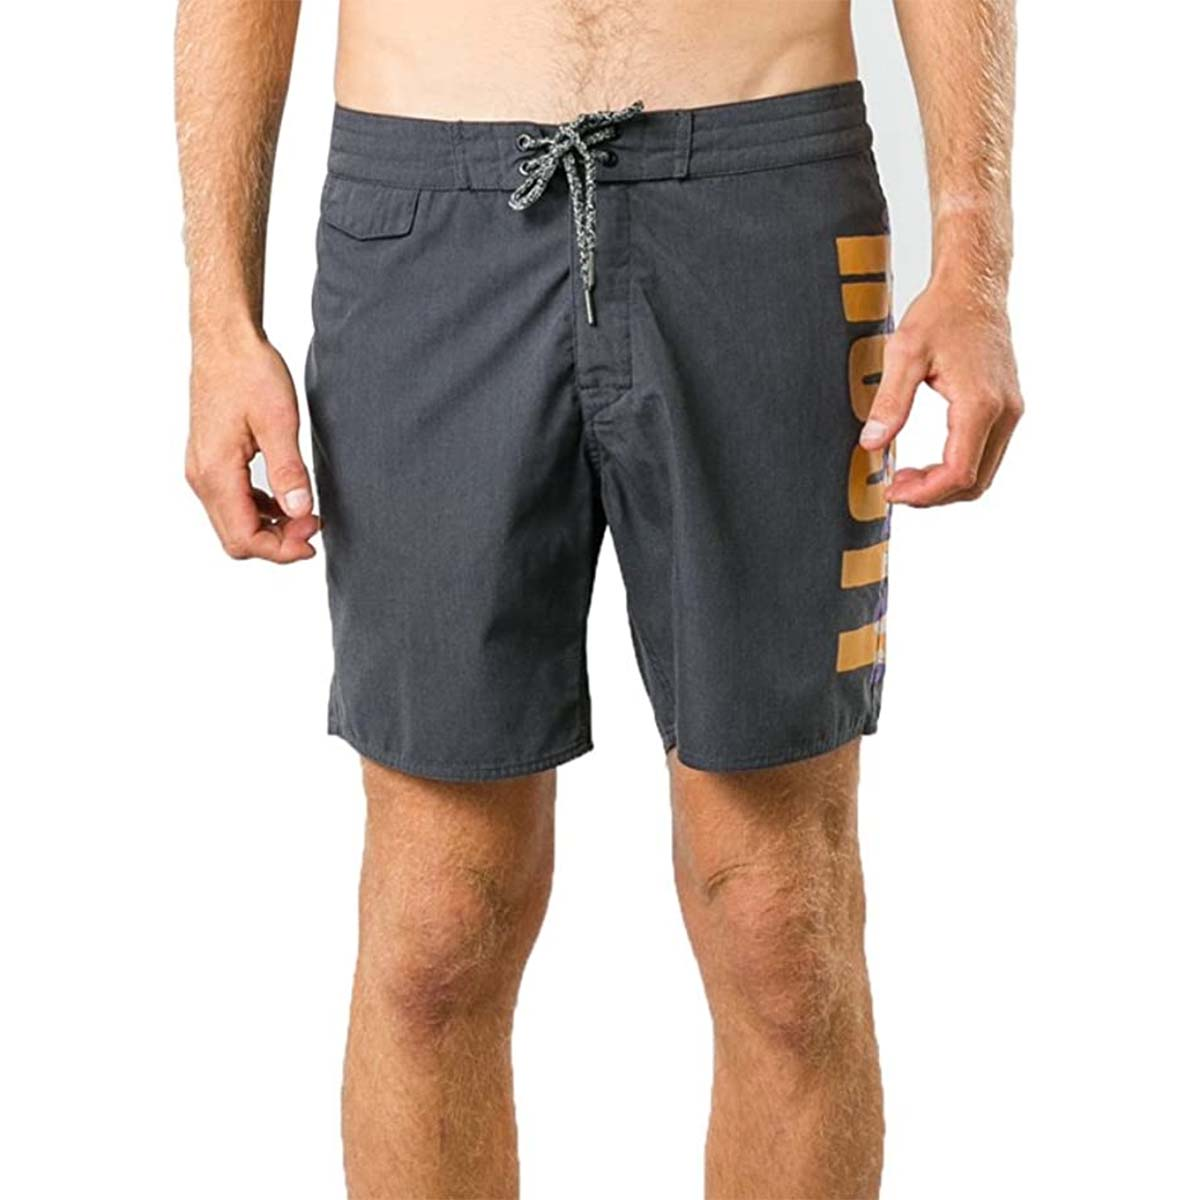 Rusty Jump Elastic All Day Men's Boardshort Shorts-BSM1266